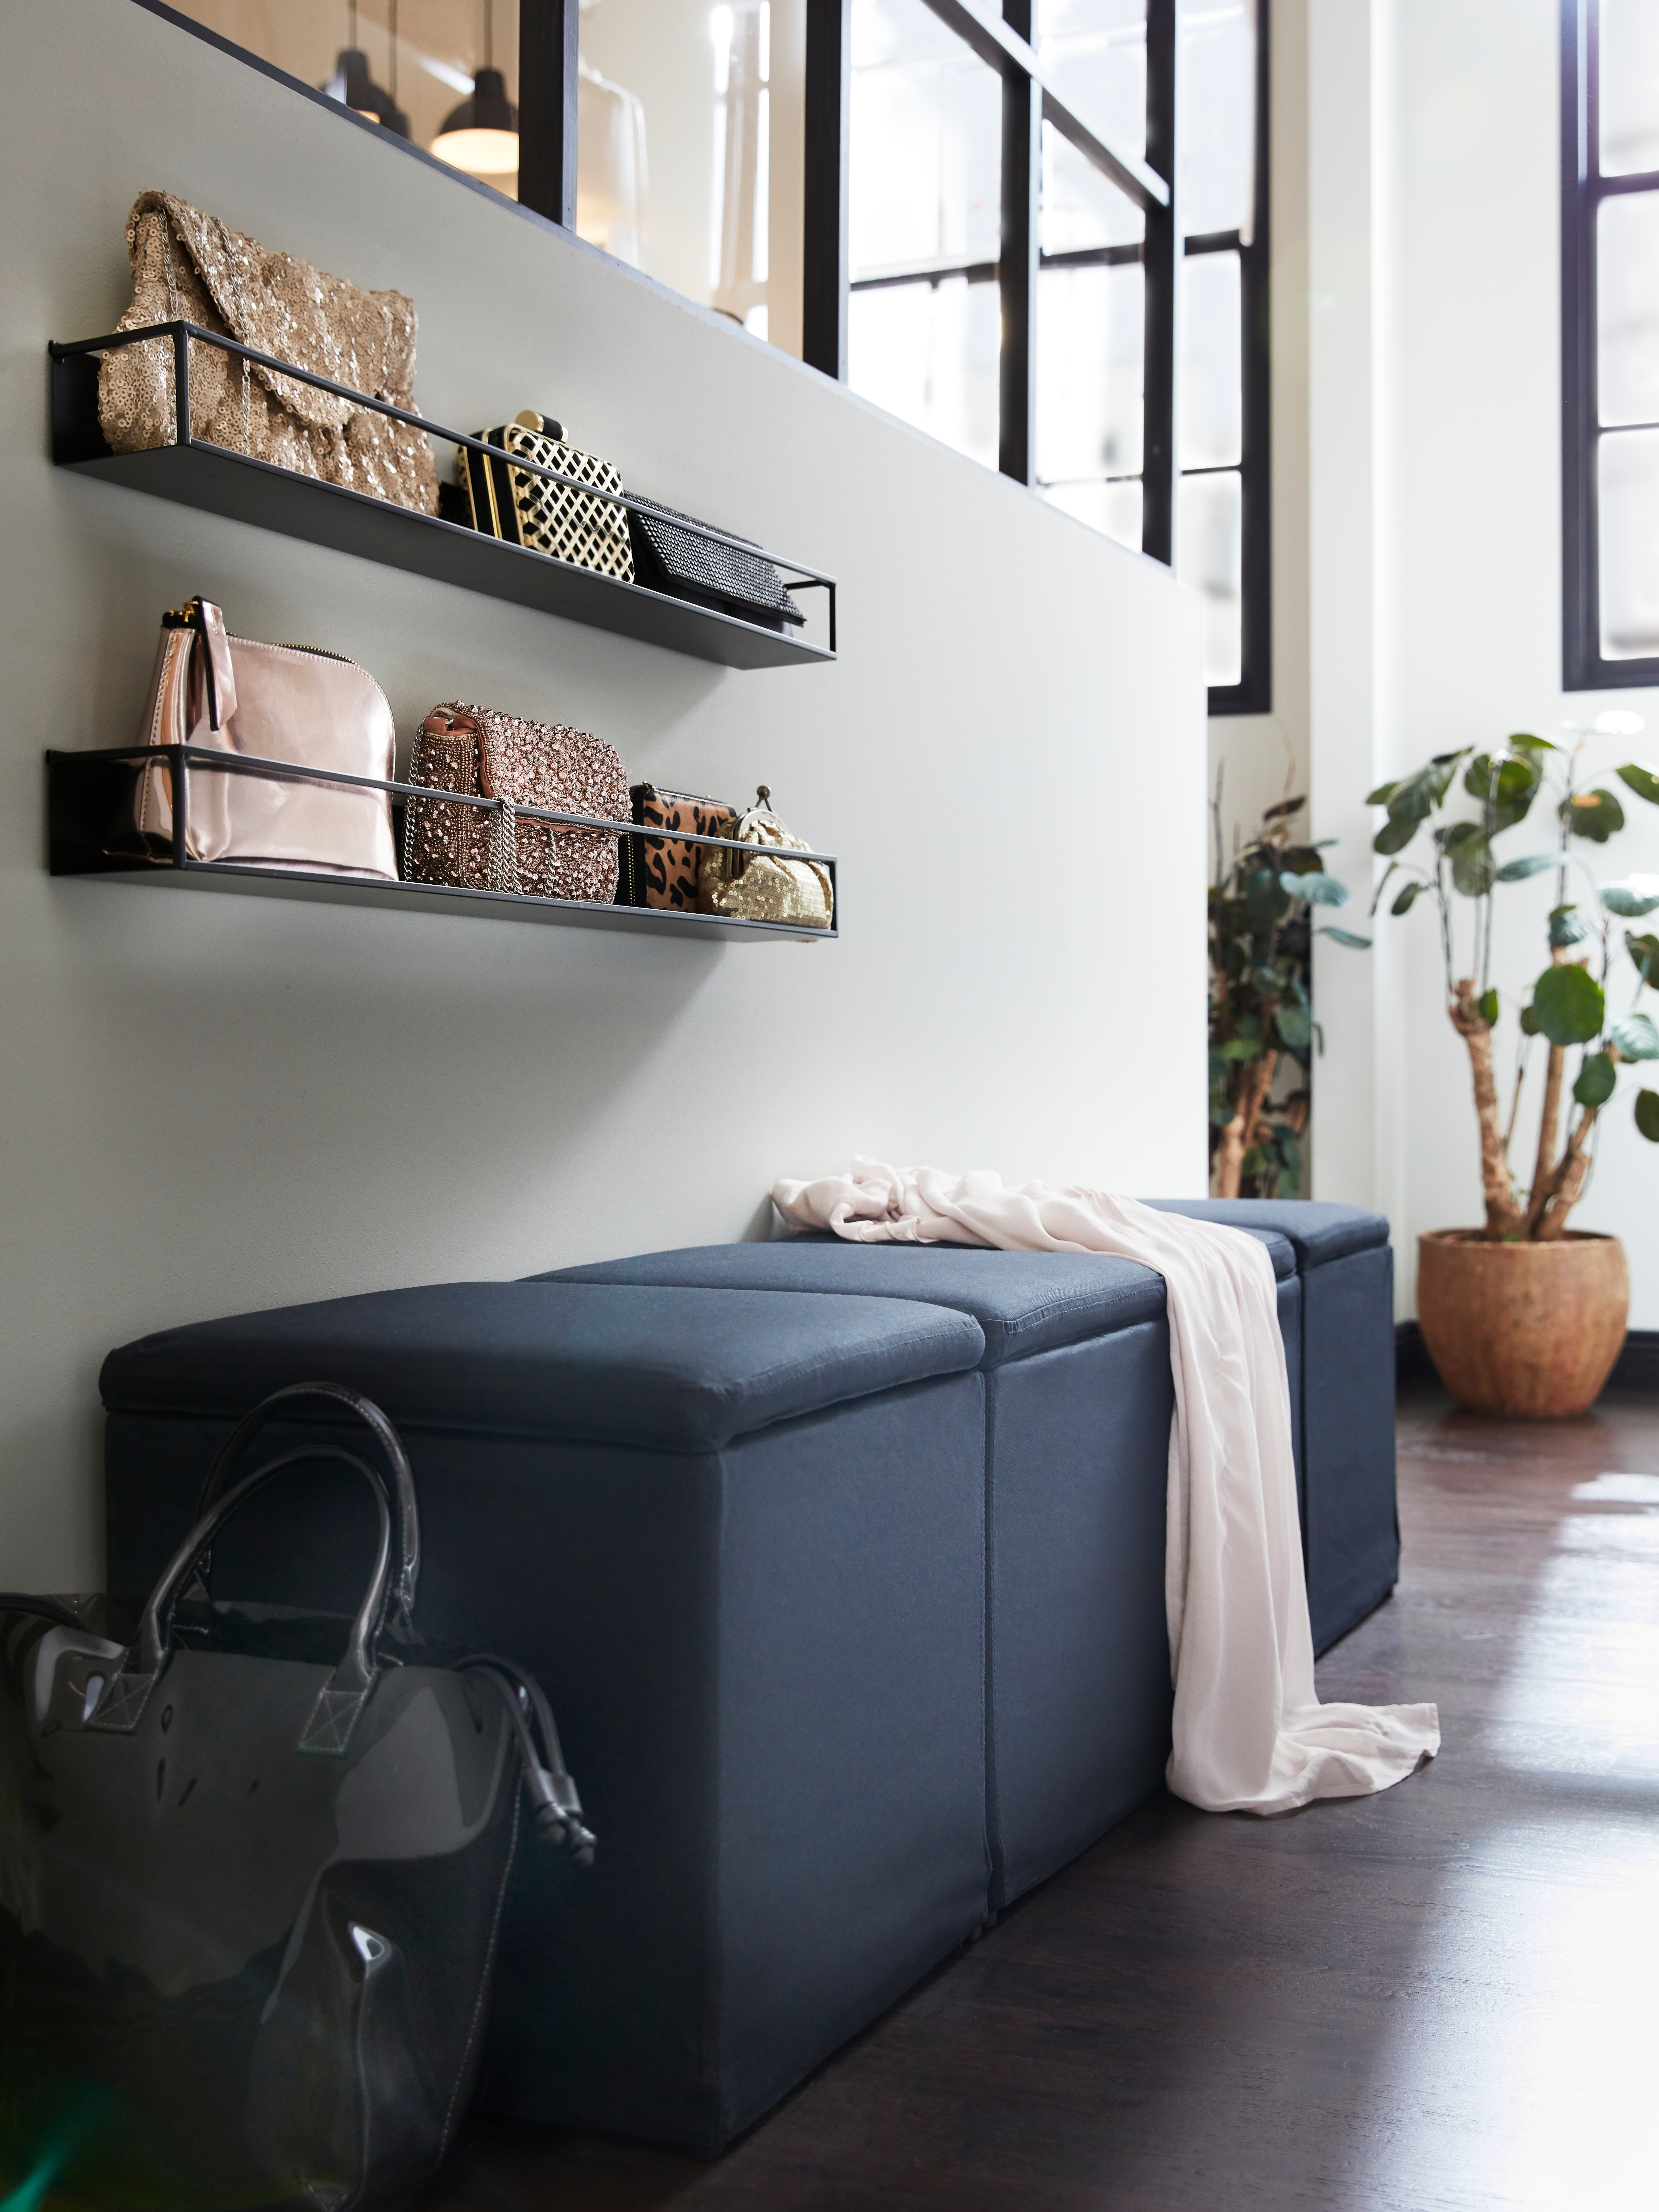 A row of cube-shaped, black BOSNÄS footstools with storage under the fabric seat against a wall that has purses on shelves.